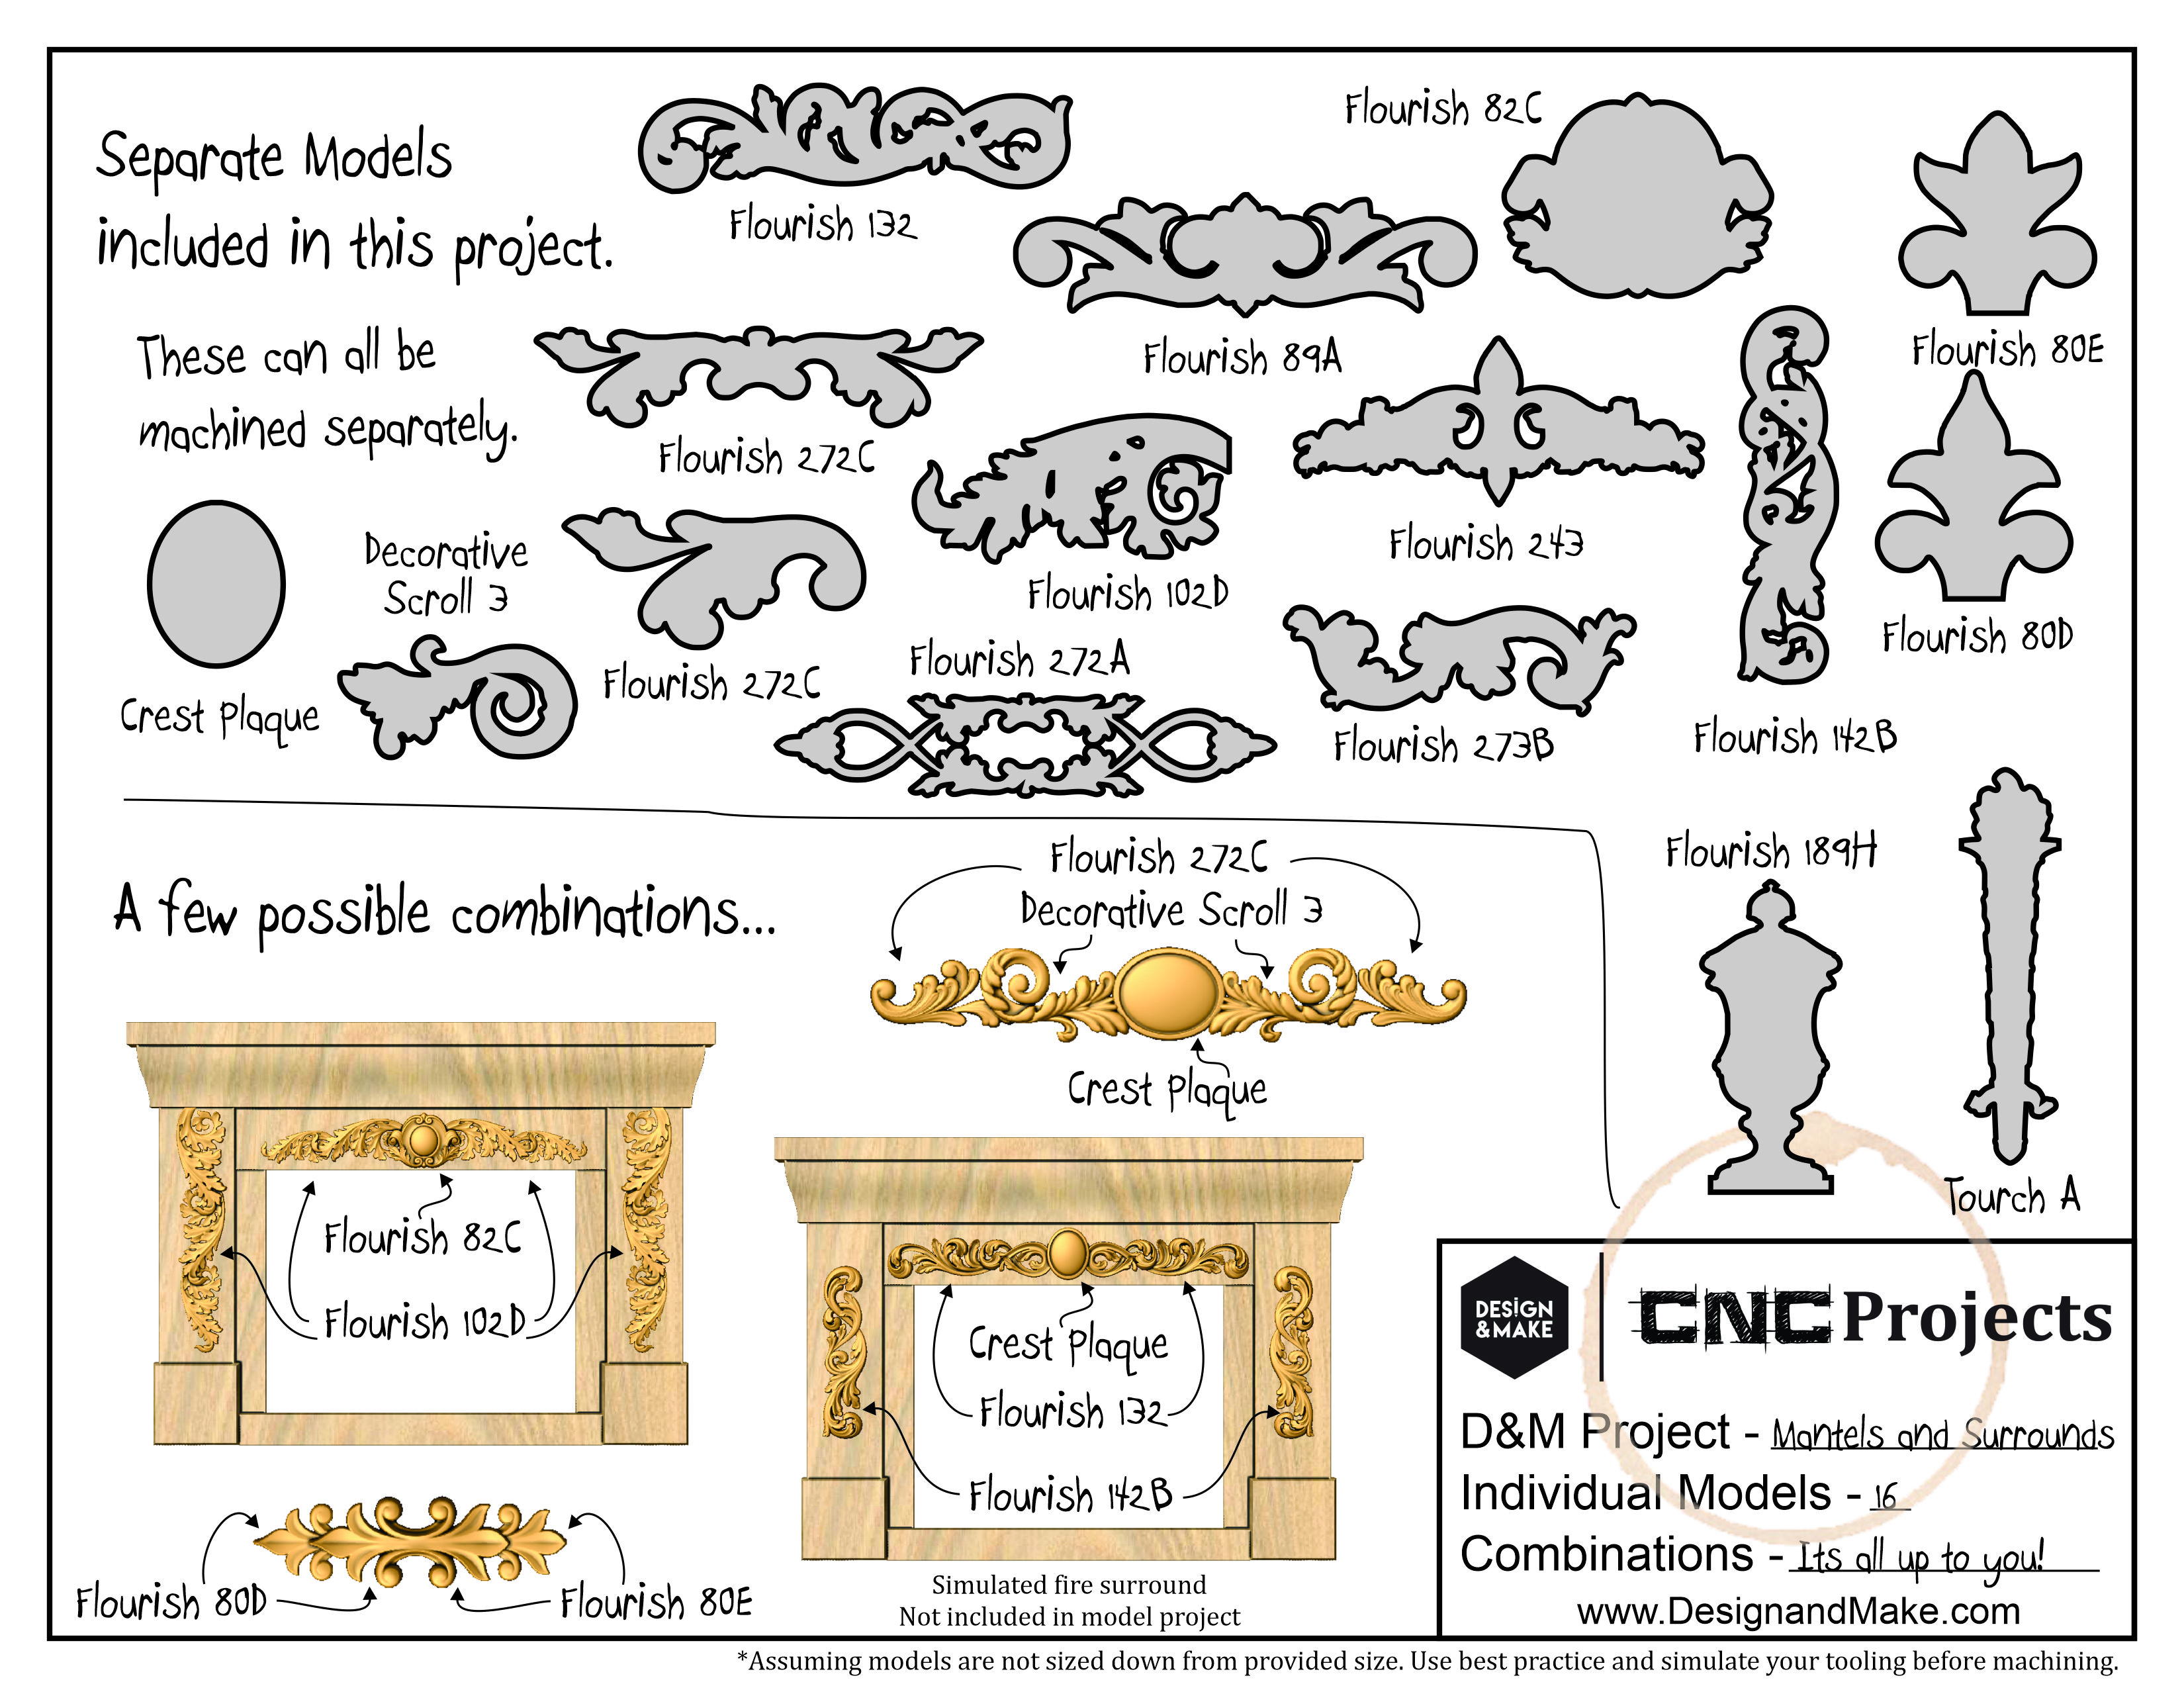 Architectural Elements - Mantels and Surrounds - Project Sheet